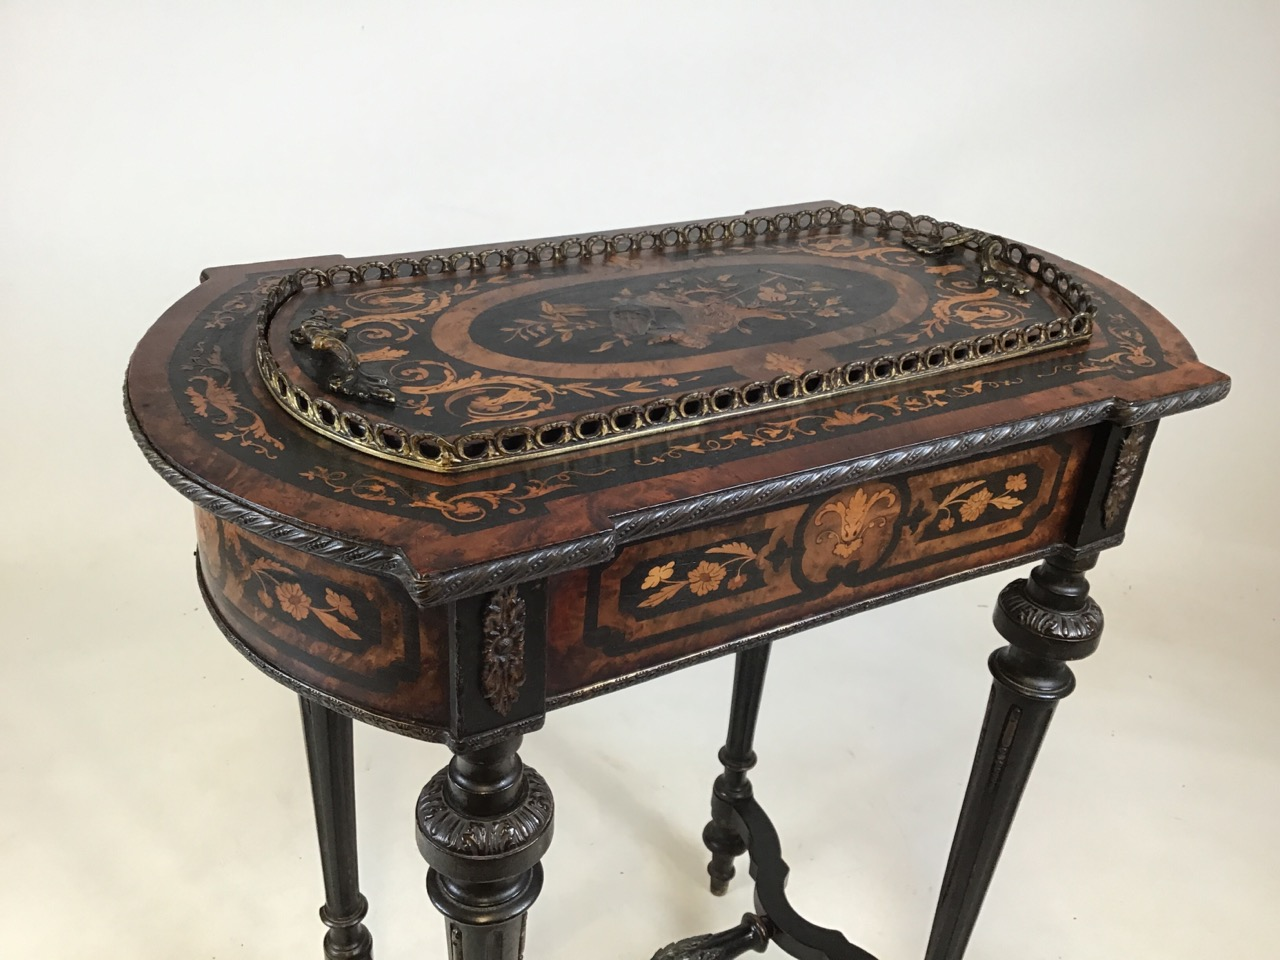 A 19th Century Dutch marquetry inlaid mahogany side table with tin lined lidded top possibly - Image 2 of 8